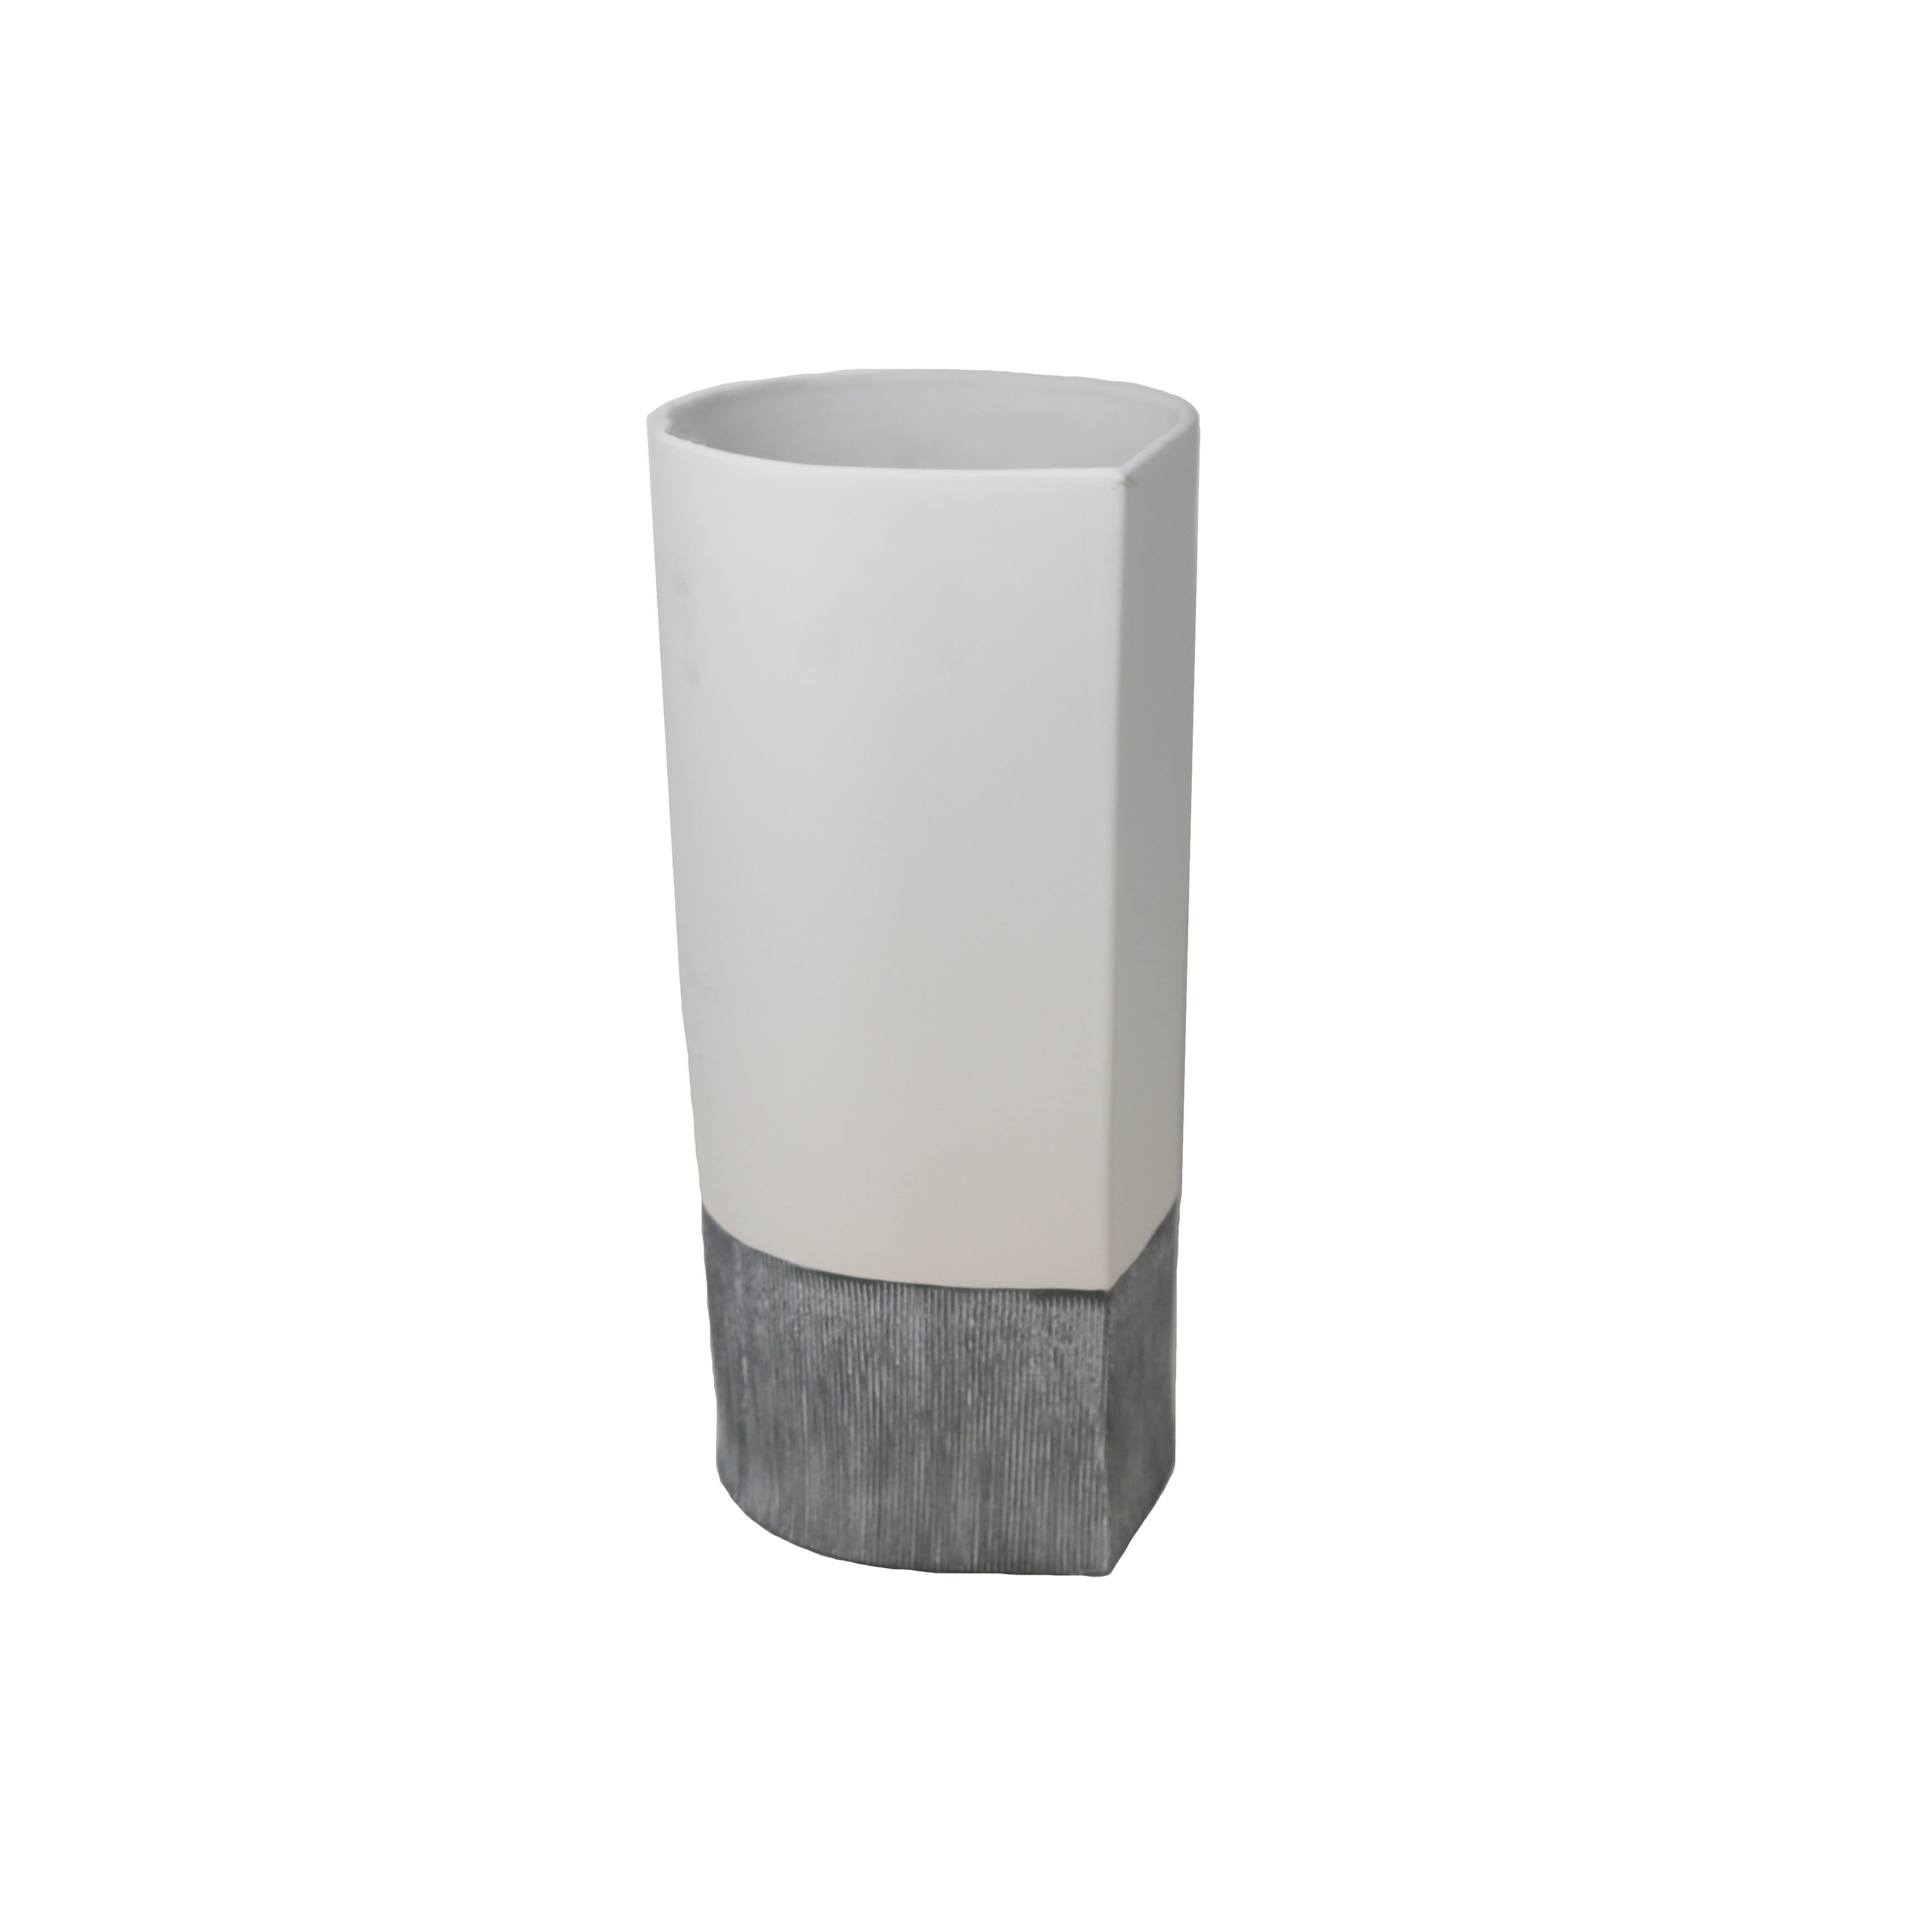 Ceramic Two Tone Vase With Wide Open Mouth And Small Base, Large, White and Gray